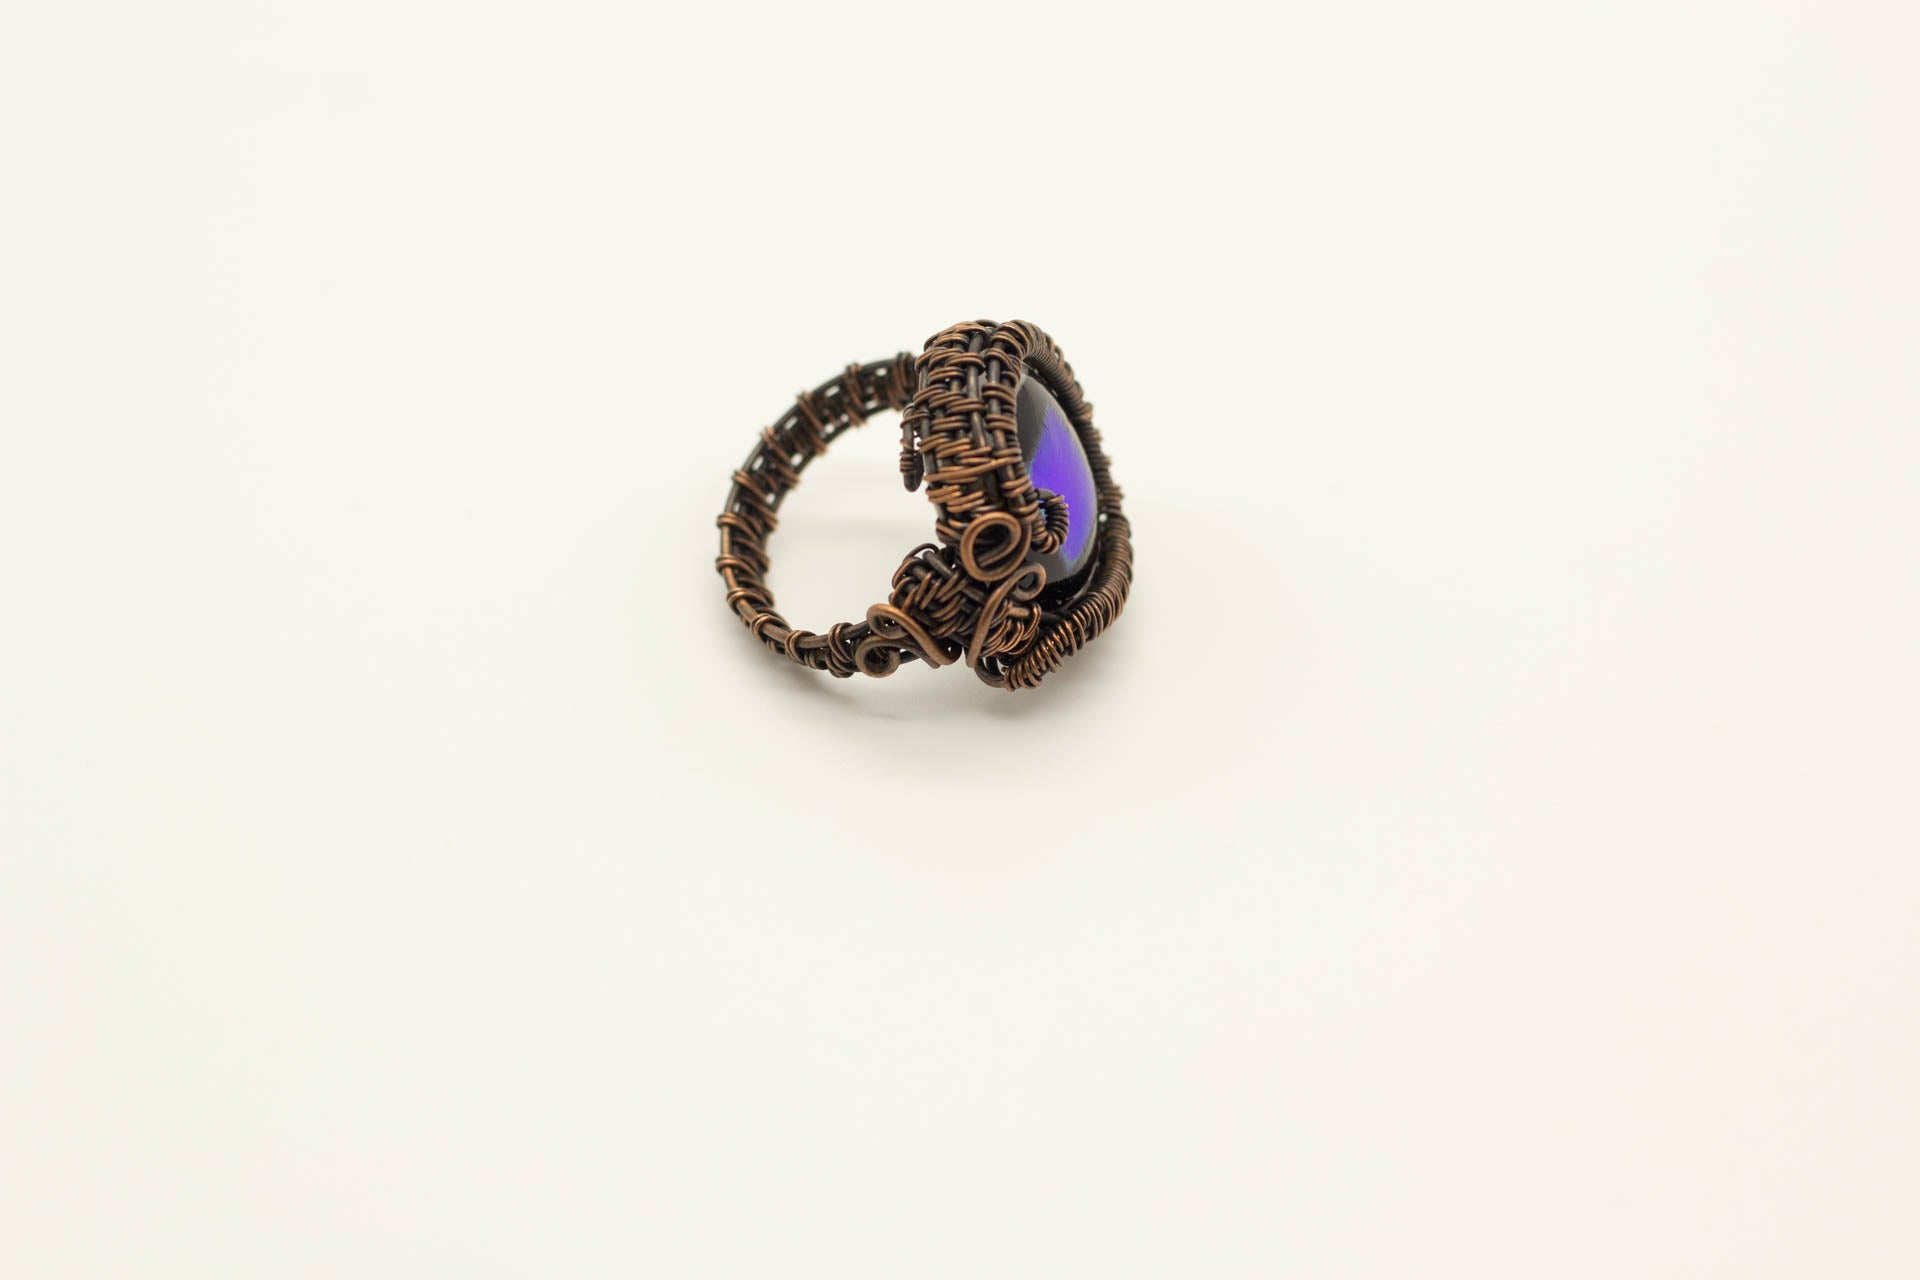 dichroic-blue-black-fused-glass-copper-wire-wrapped-ring-nymph-in-the-woods-jewelry